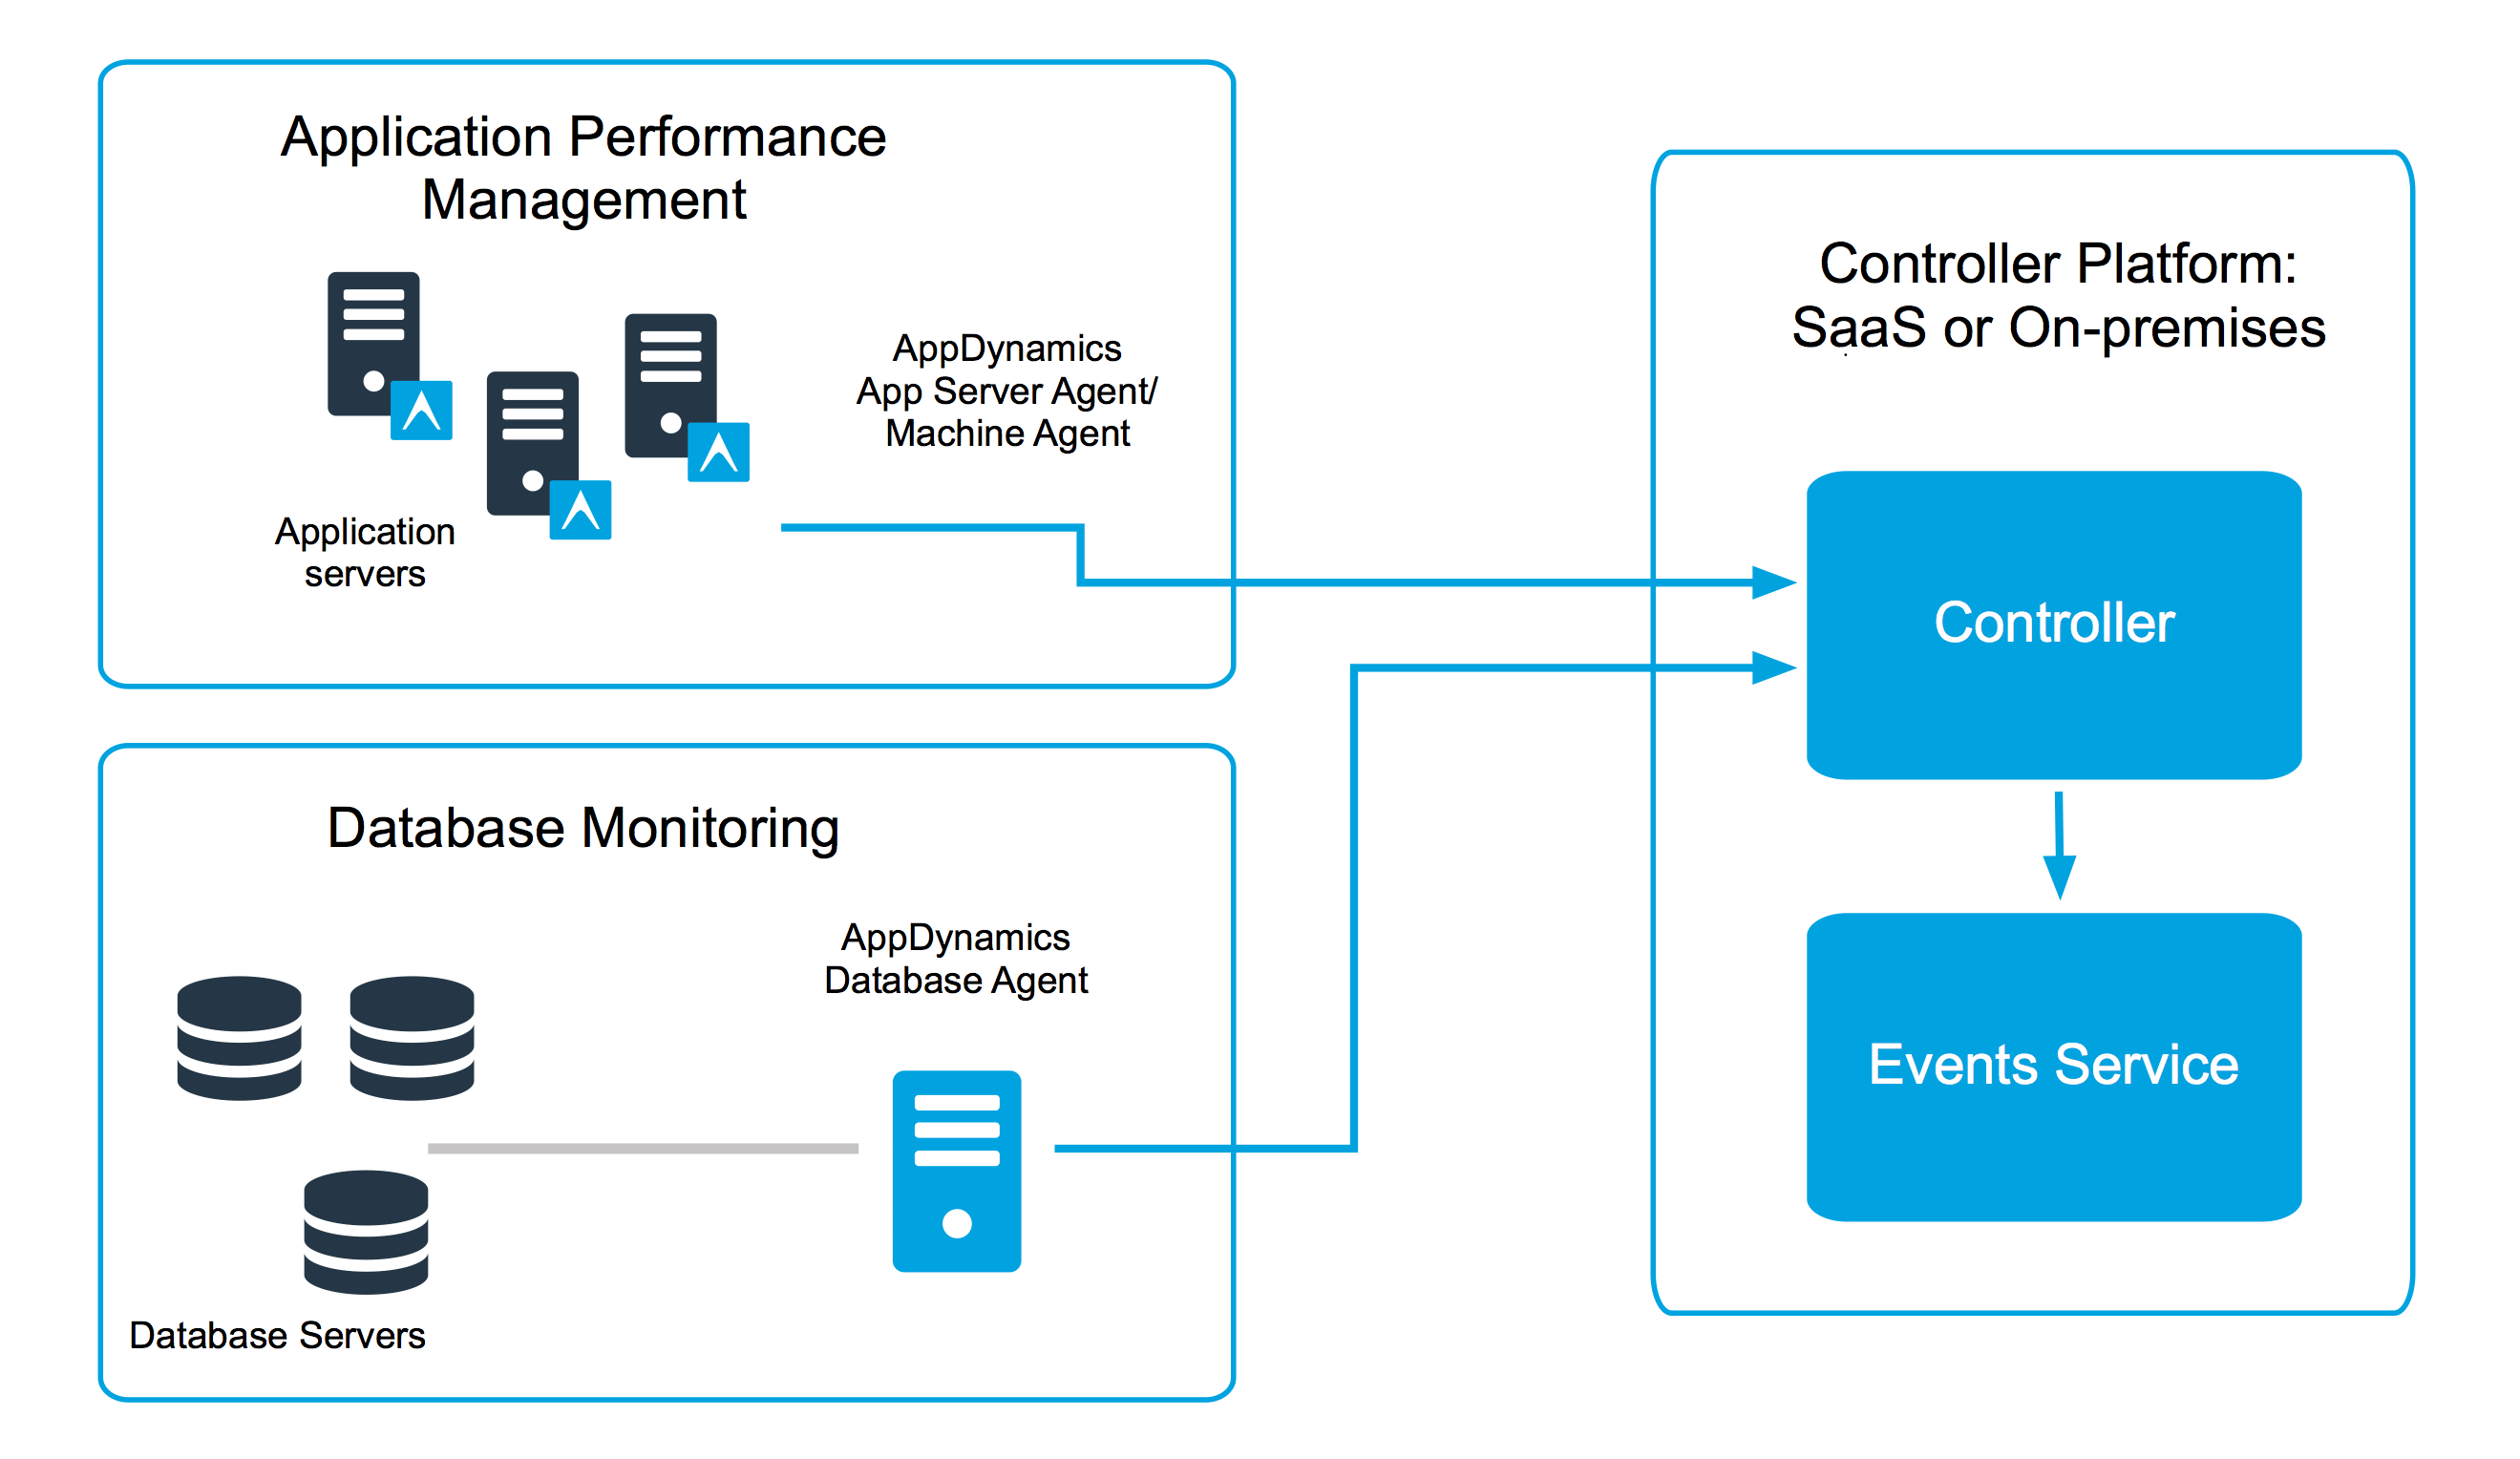 sharepoint 2013 components diagram block of eeg machine javaagents monitoring java application in appdynamics